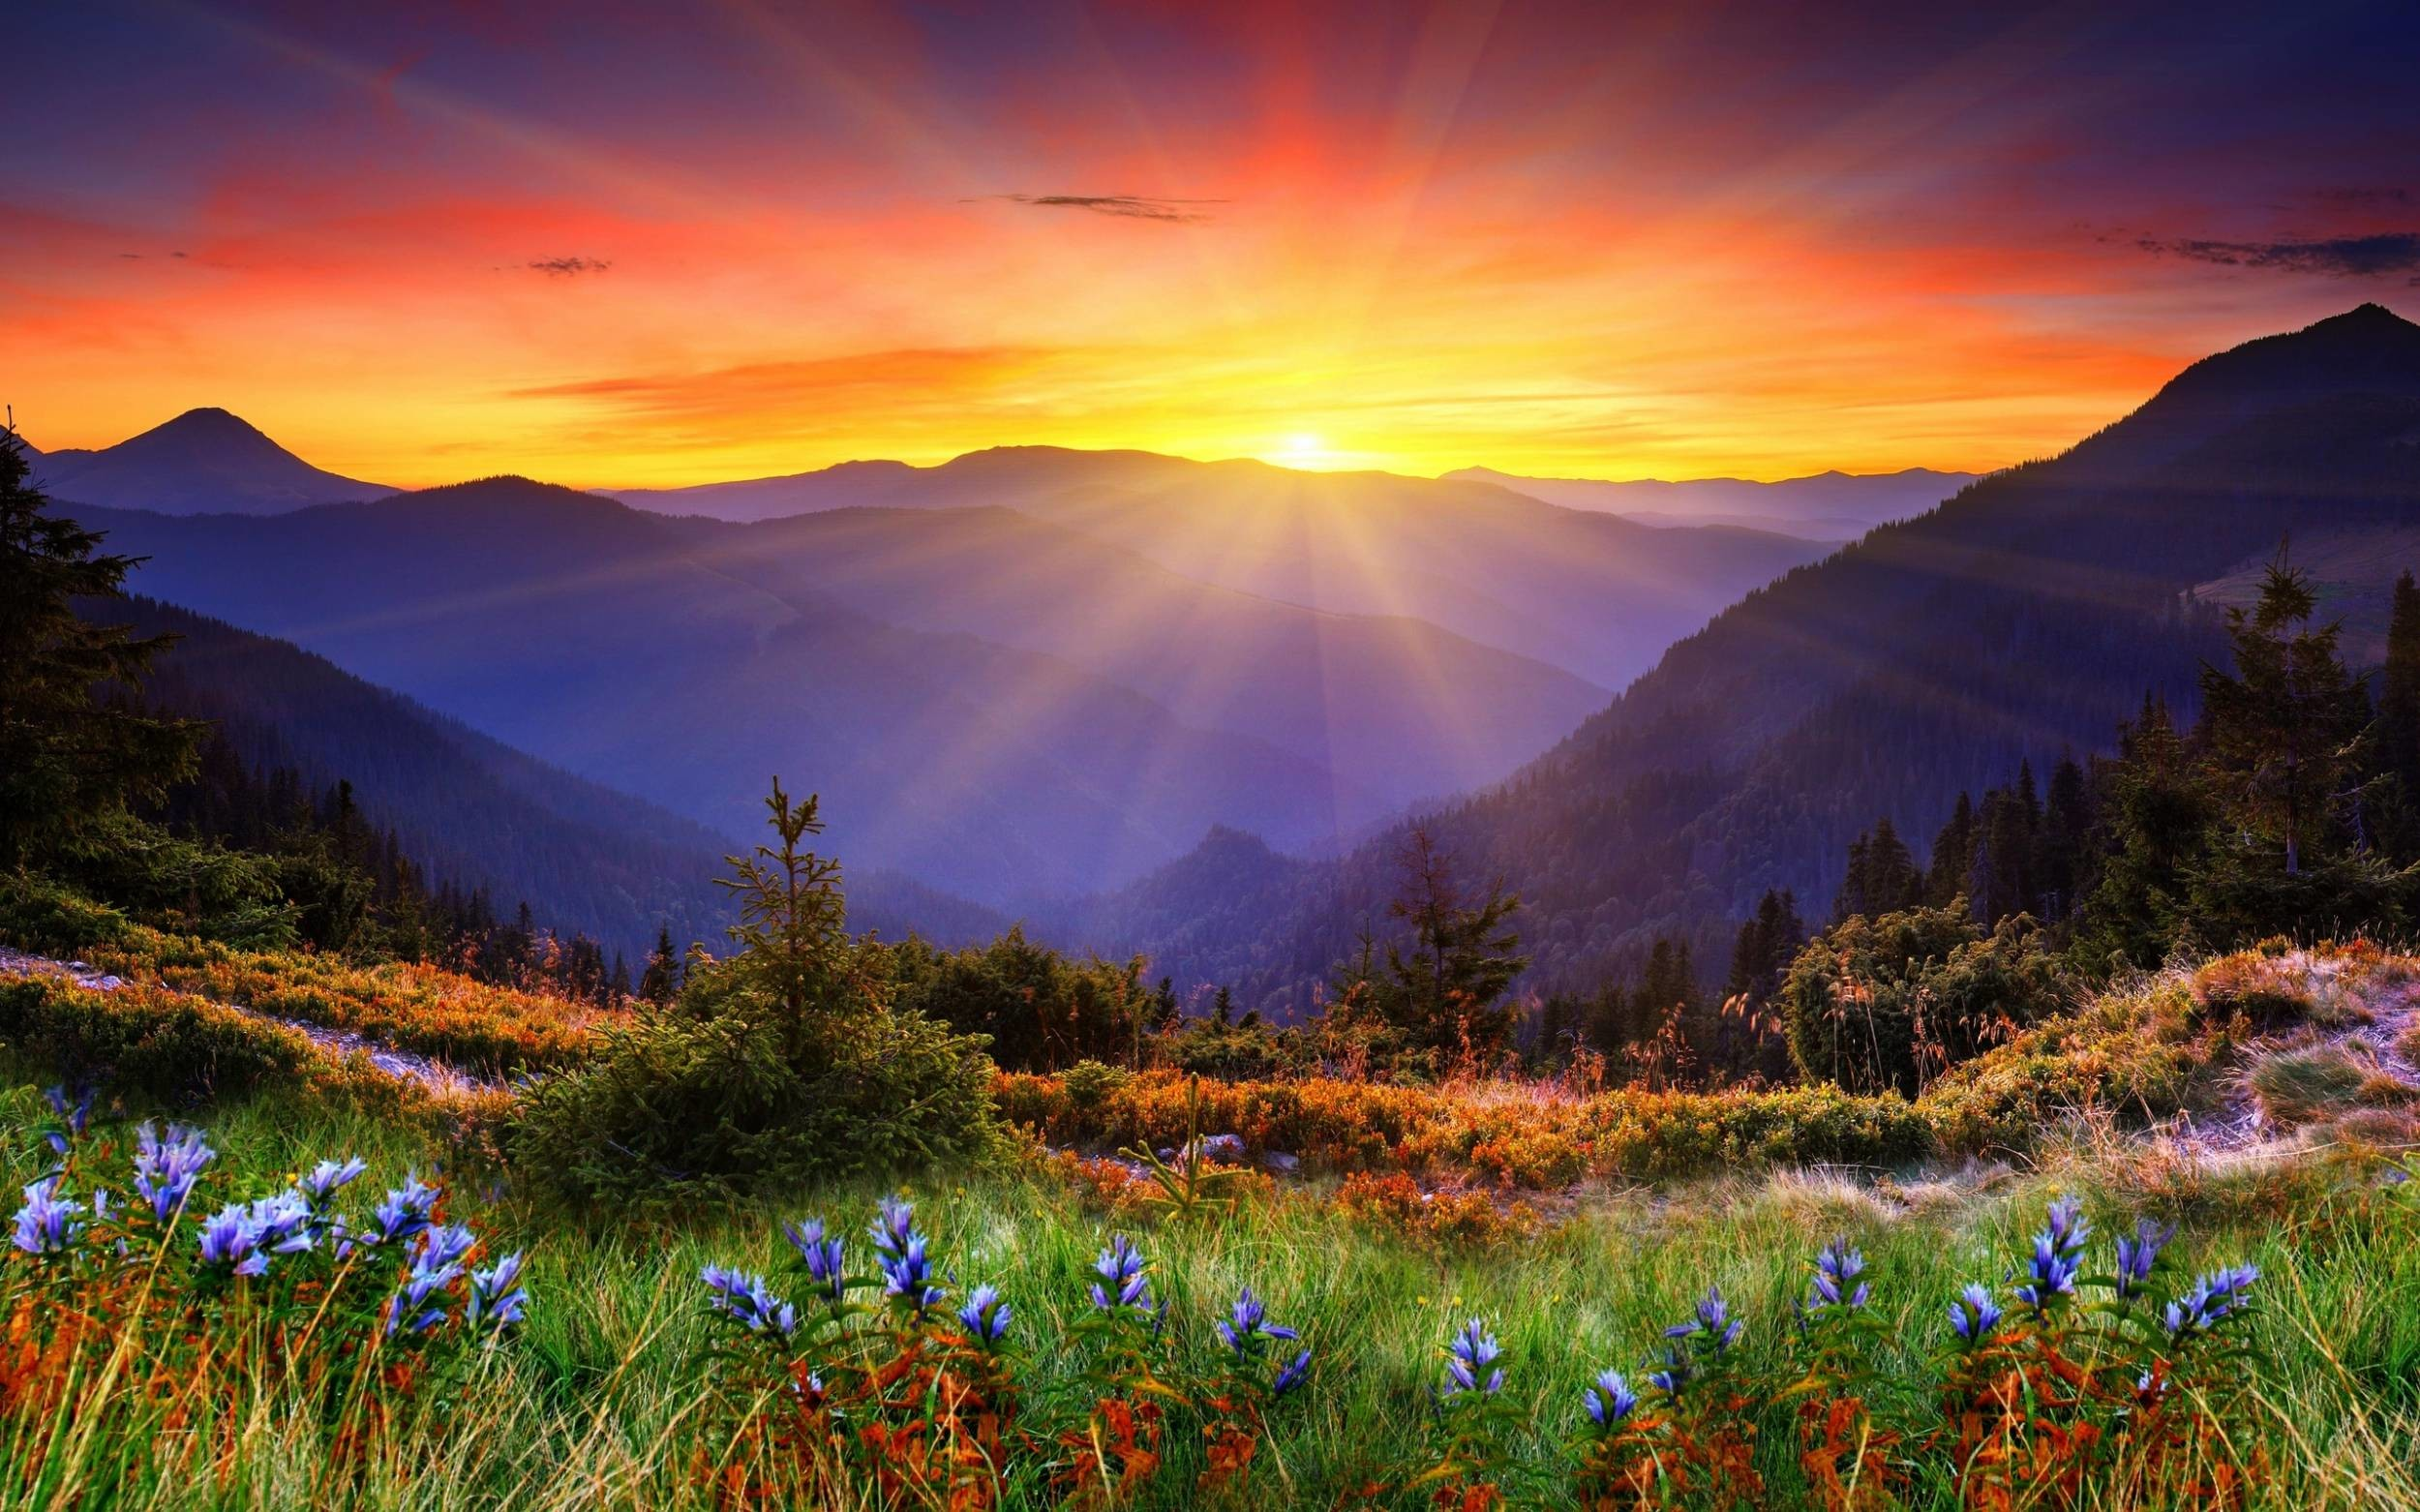 Res: 2500x1562, Wide HD Scenic Wallpaper – Wallpapers and Pictures HD for mobile and desktop